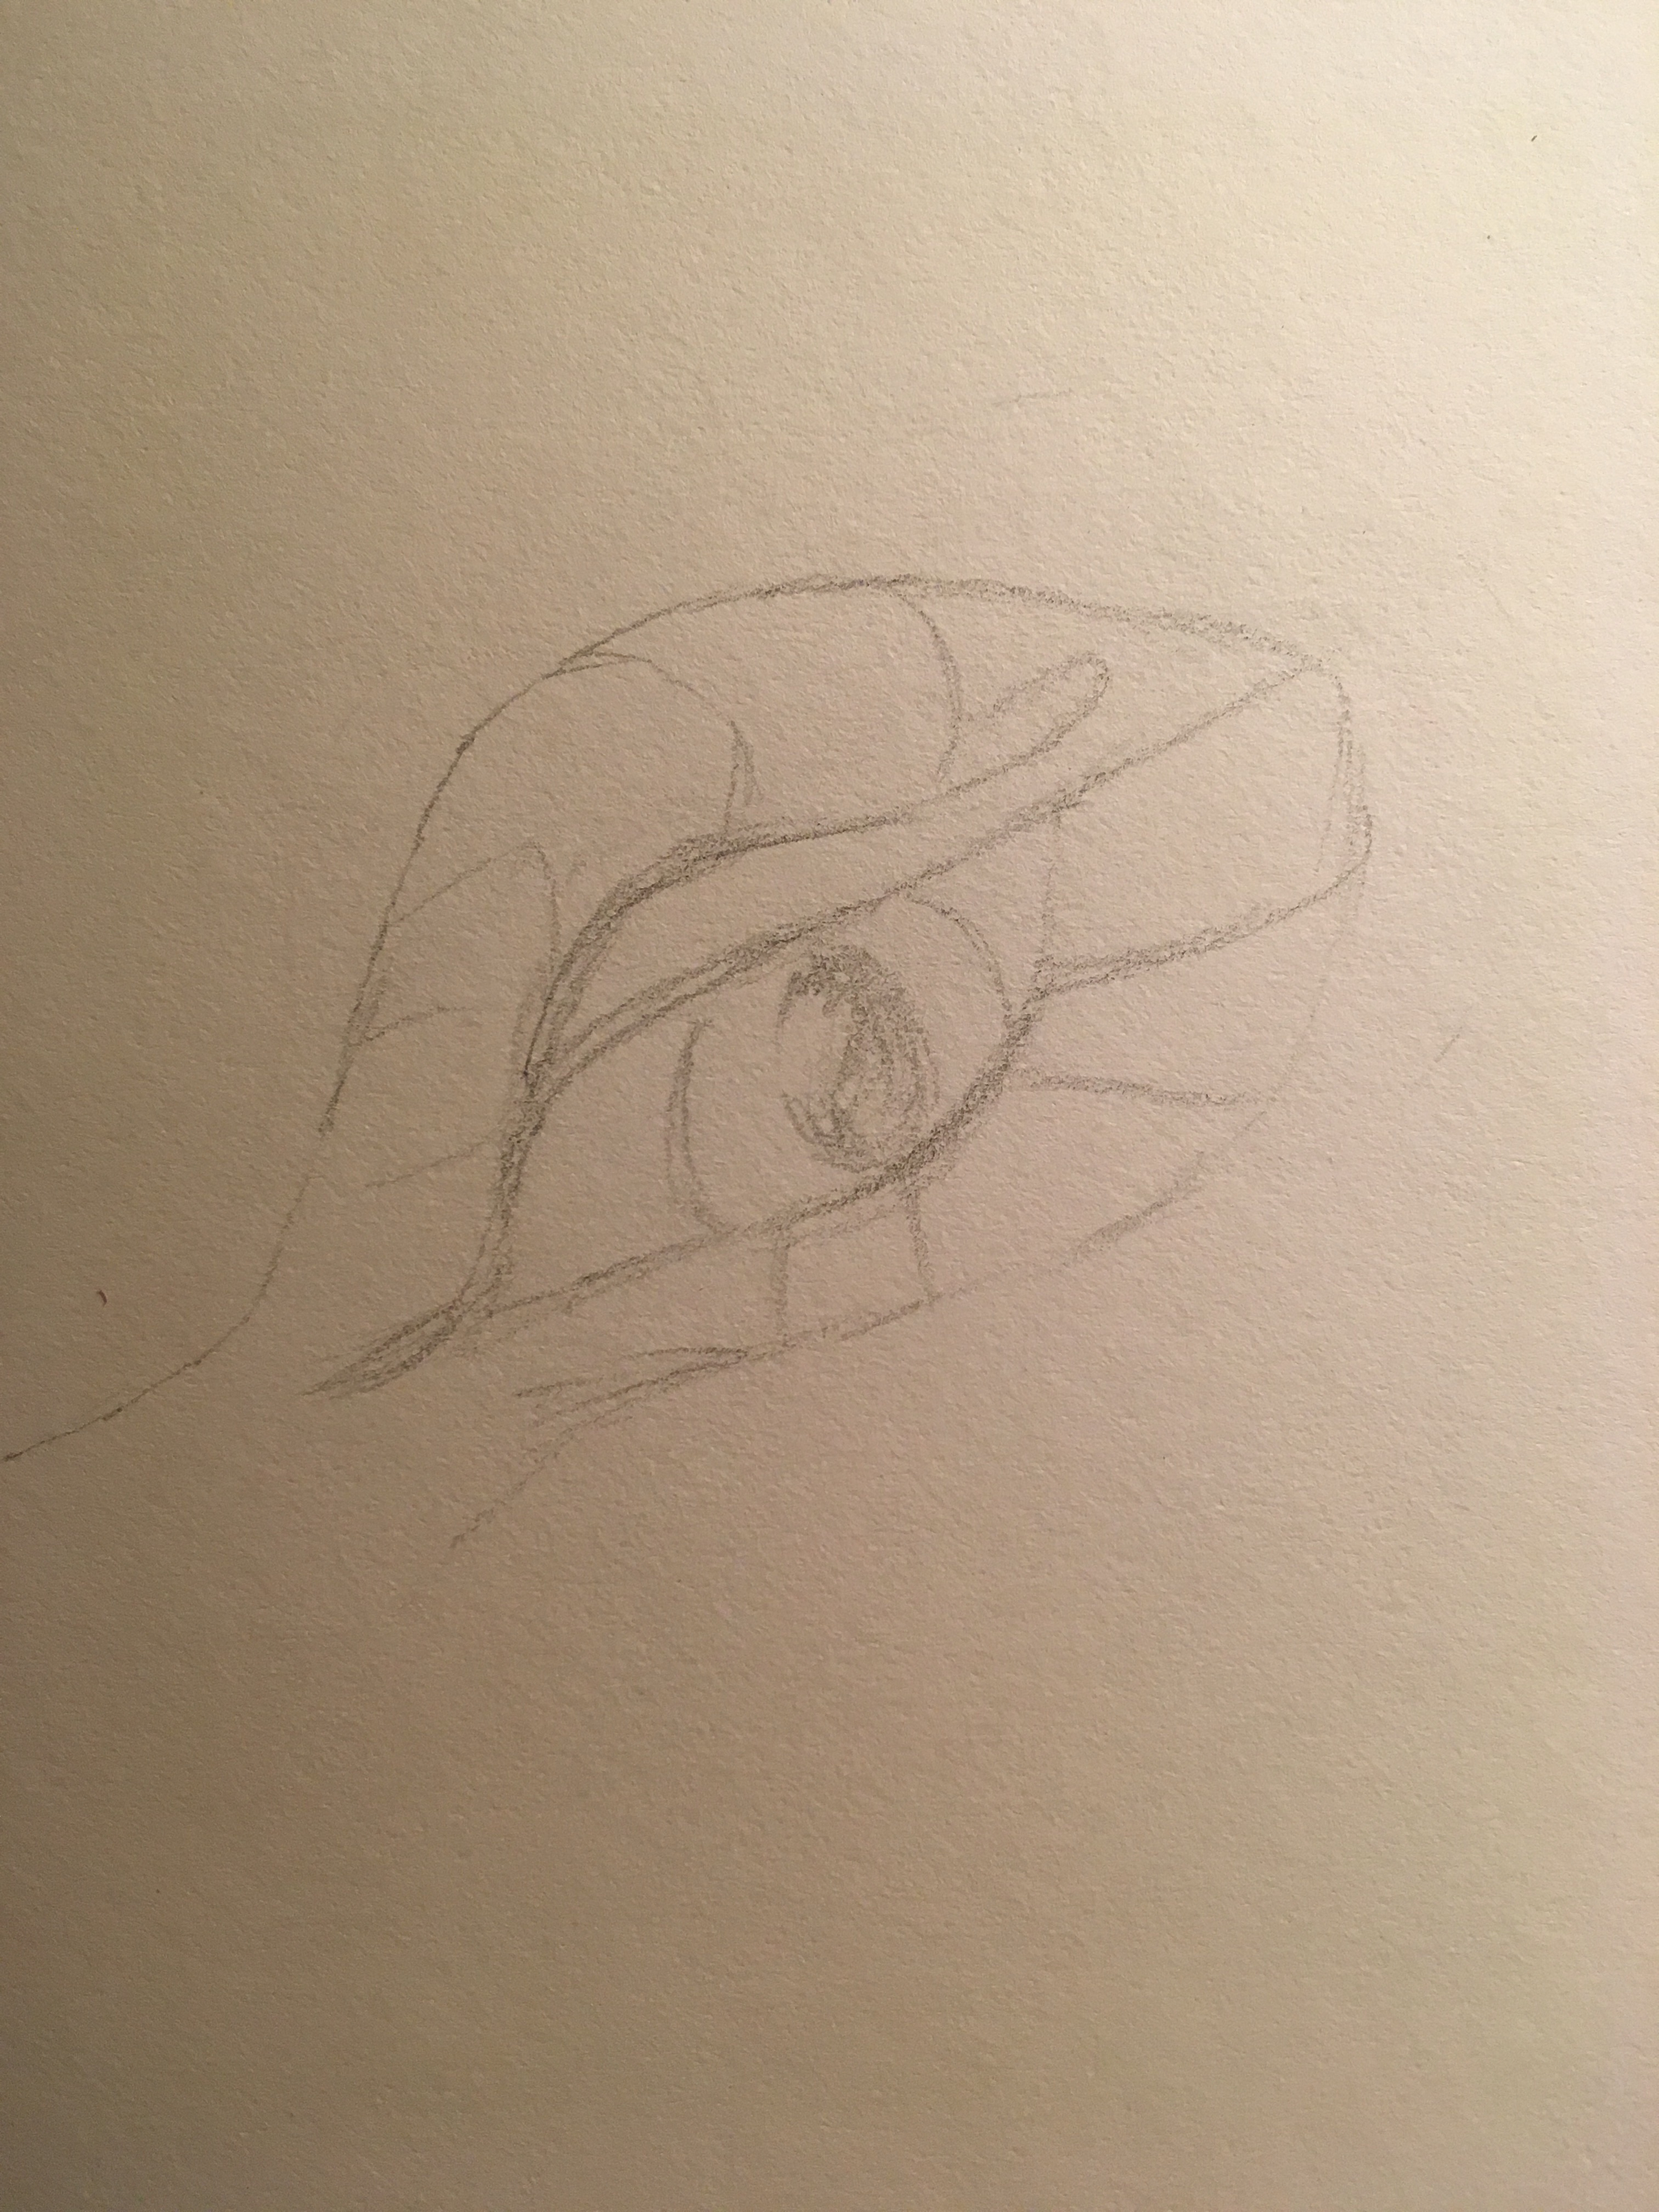 Sultry dragon eye in pencil